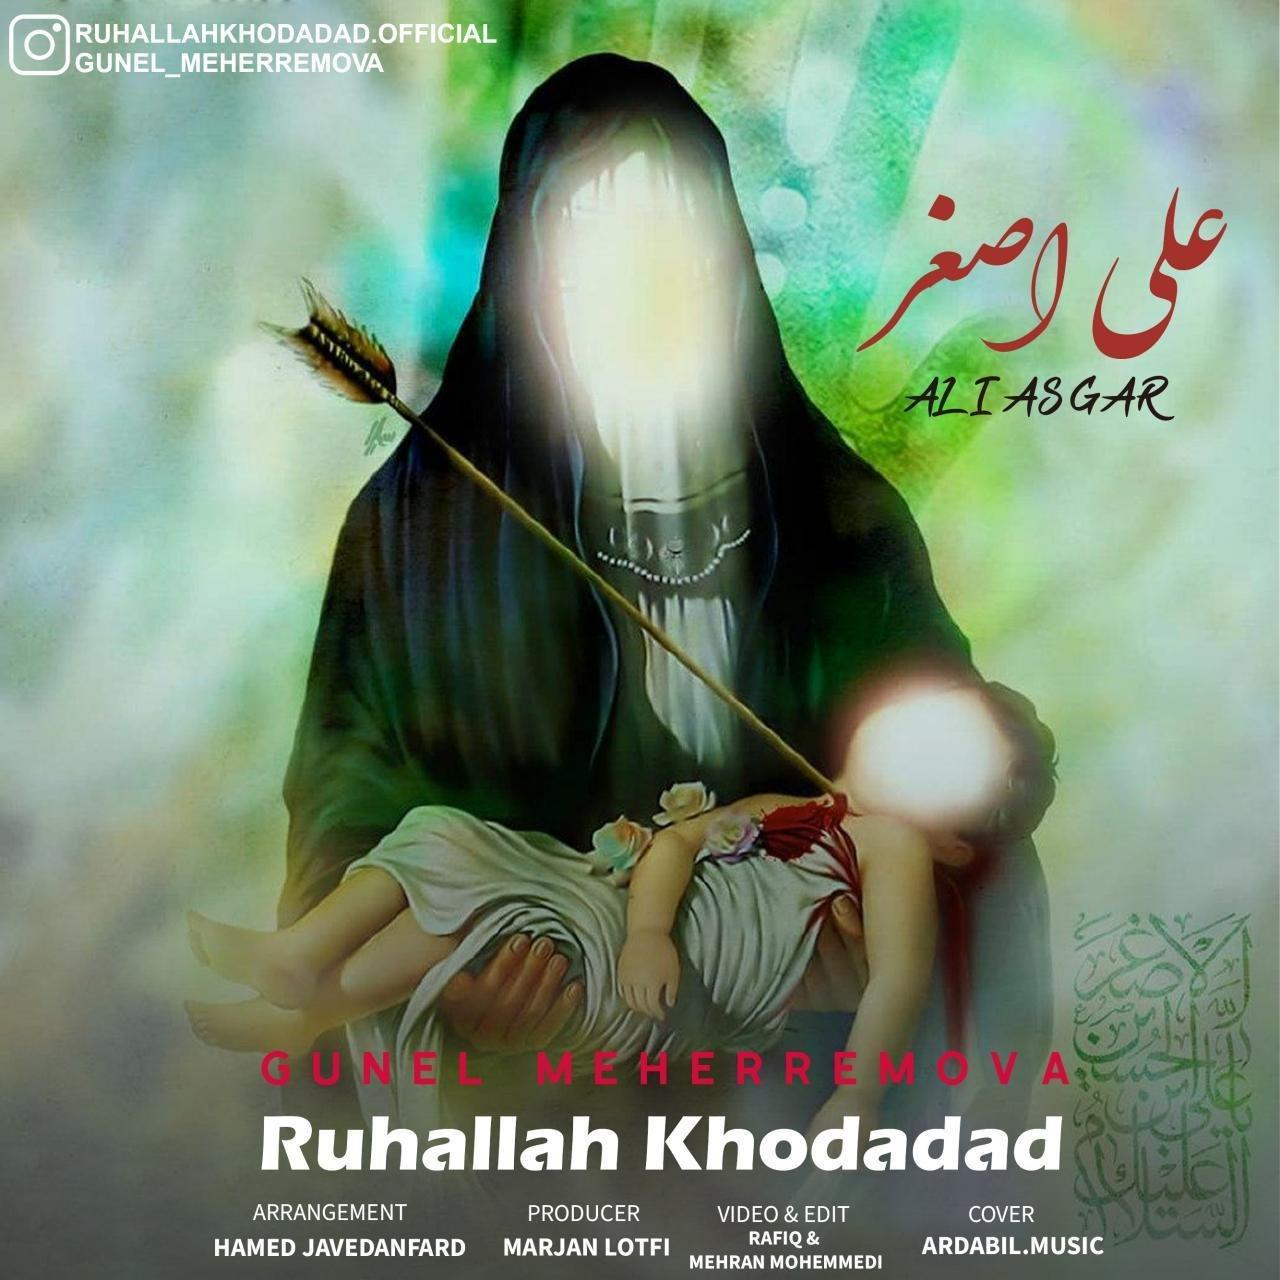 http://s11.picofile.com/file/8407336834/12Ruhallah_Khodadad_Ft_Gunel_Meherremova_Ali_Asgar.jpg